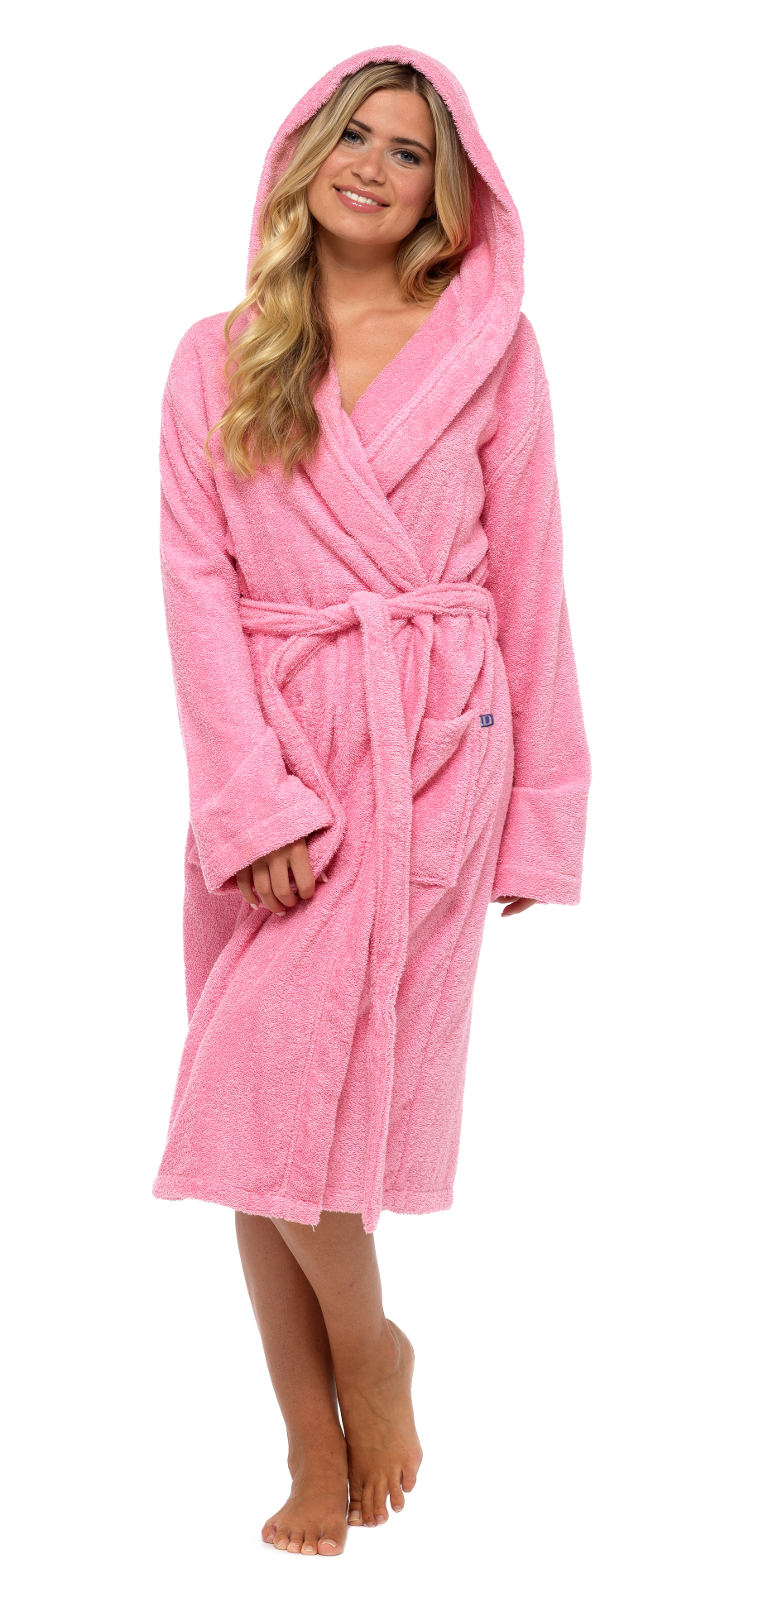 Find all your women's robe needs at programadereconstrucaocapilar.ml From plush robes to flirty robes from your favorite brands like Betsey Johnson, In Bloom by Jonquil, Lauren Ralph Lauren, Oscar de la Renta Pink Label and more Dillard's has all the robes you crave.